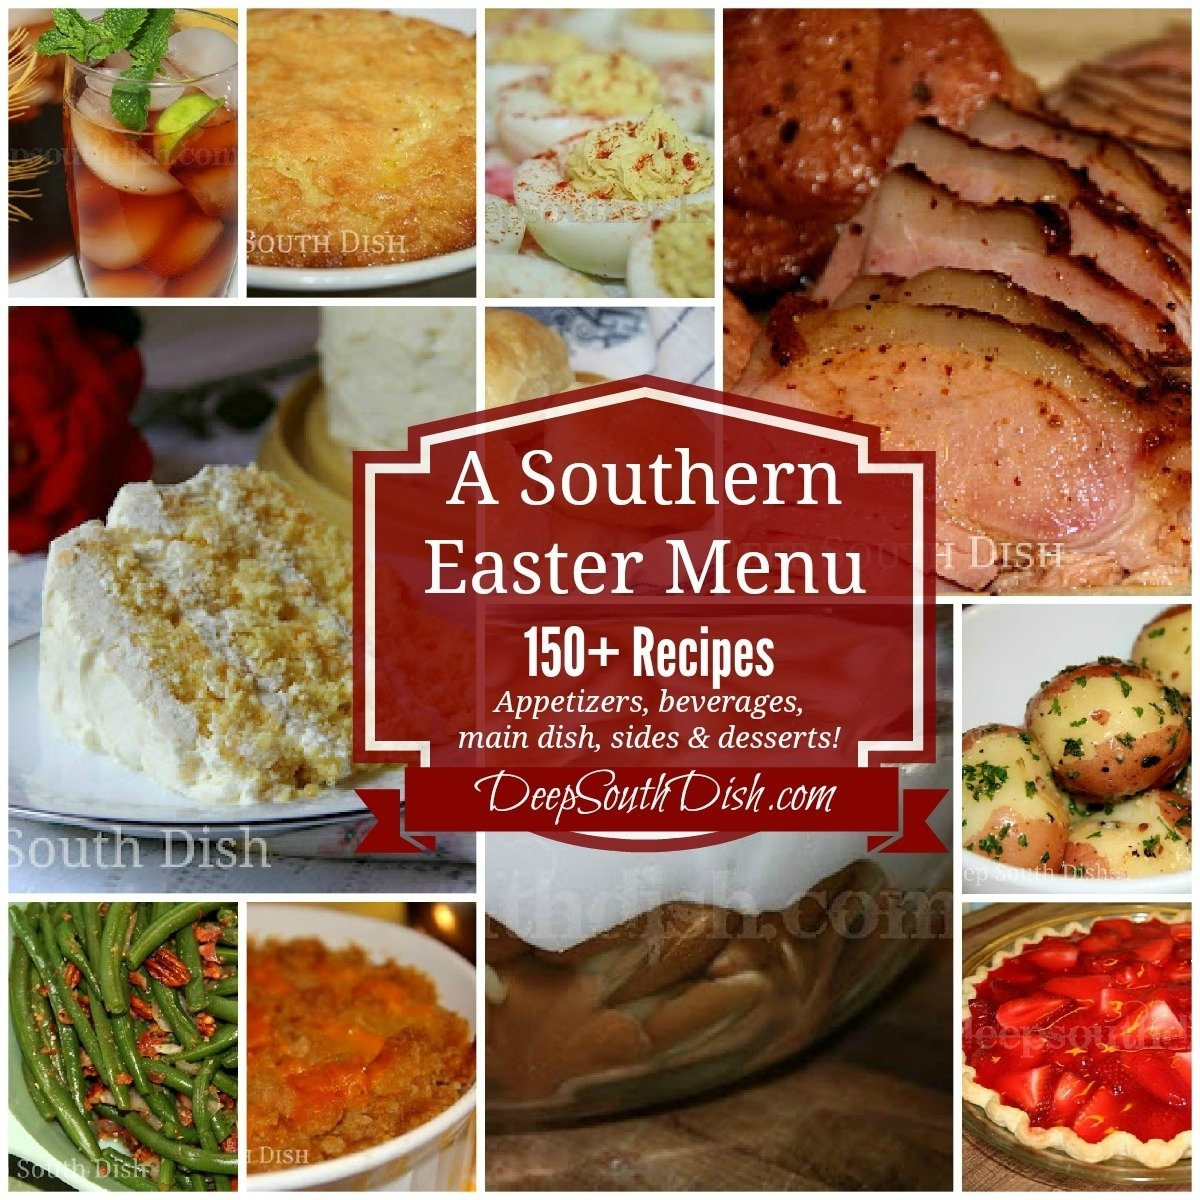 10 Fashionable Sunday Dinner Ideas Soul Food deep south dish southern easter menu ideas and recipes 4 2020